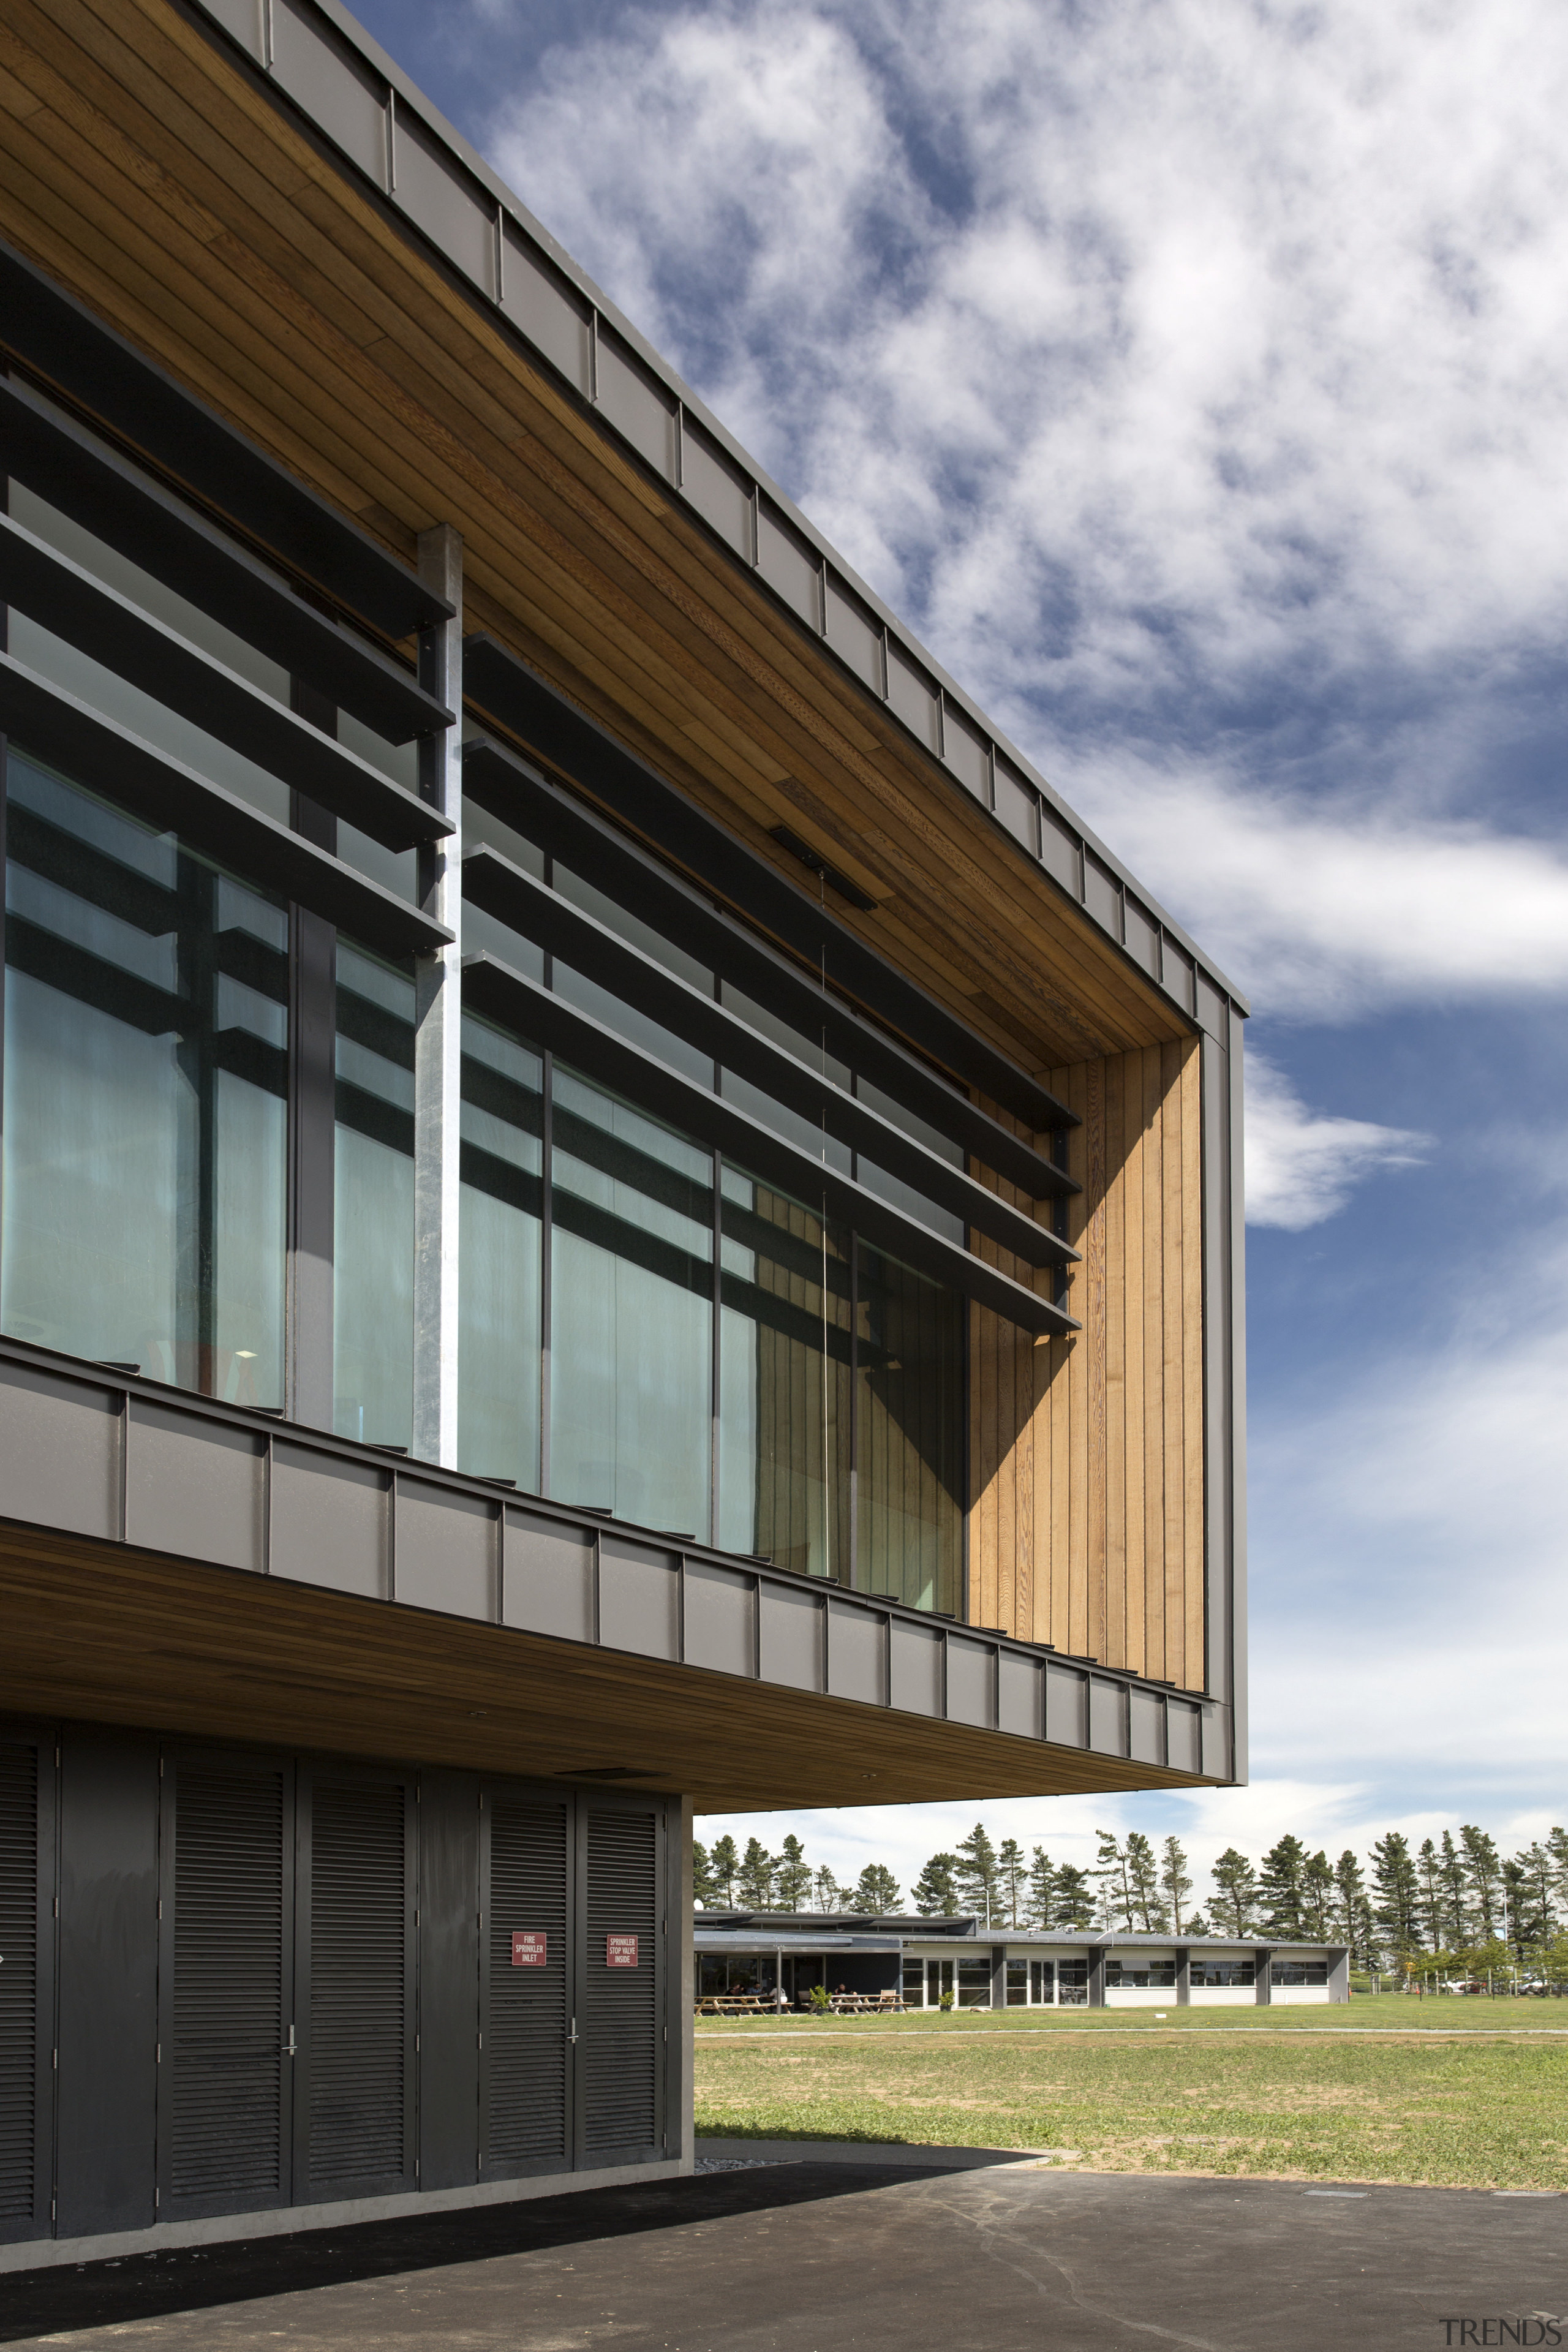 Wood soffits add a natural accent to the architecture, building, commercial building, corporate headquarters, facade, headquarters, house, sky, structure, window, gray, black